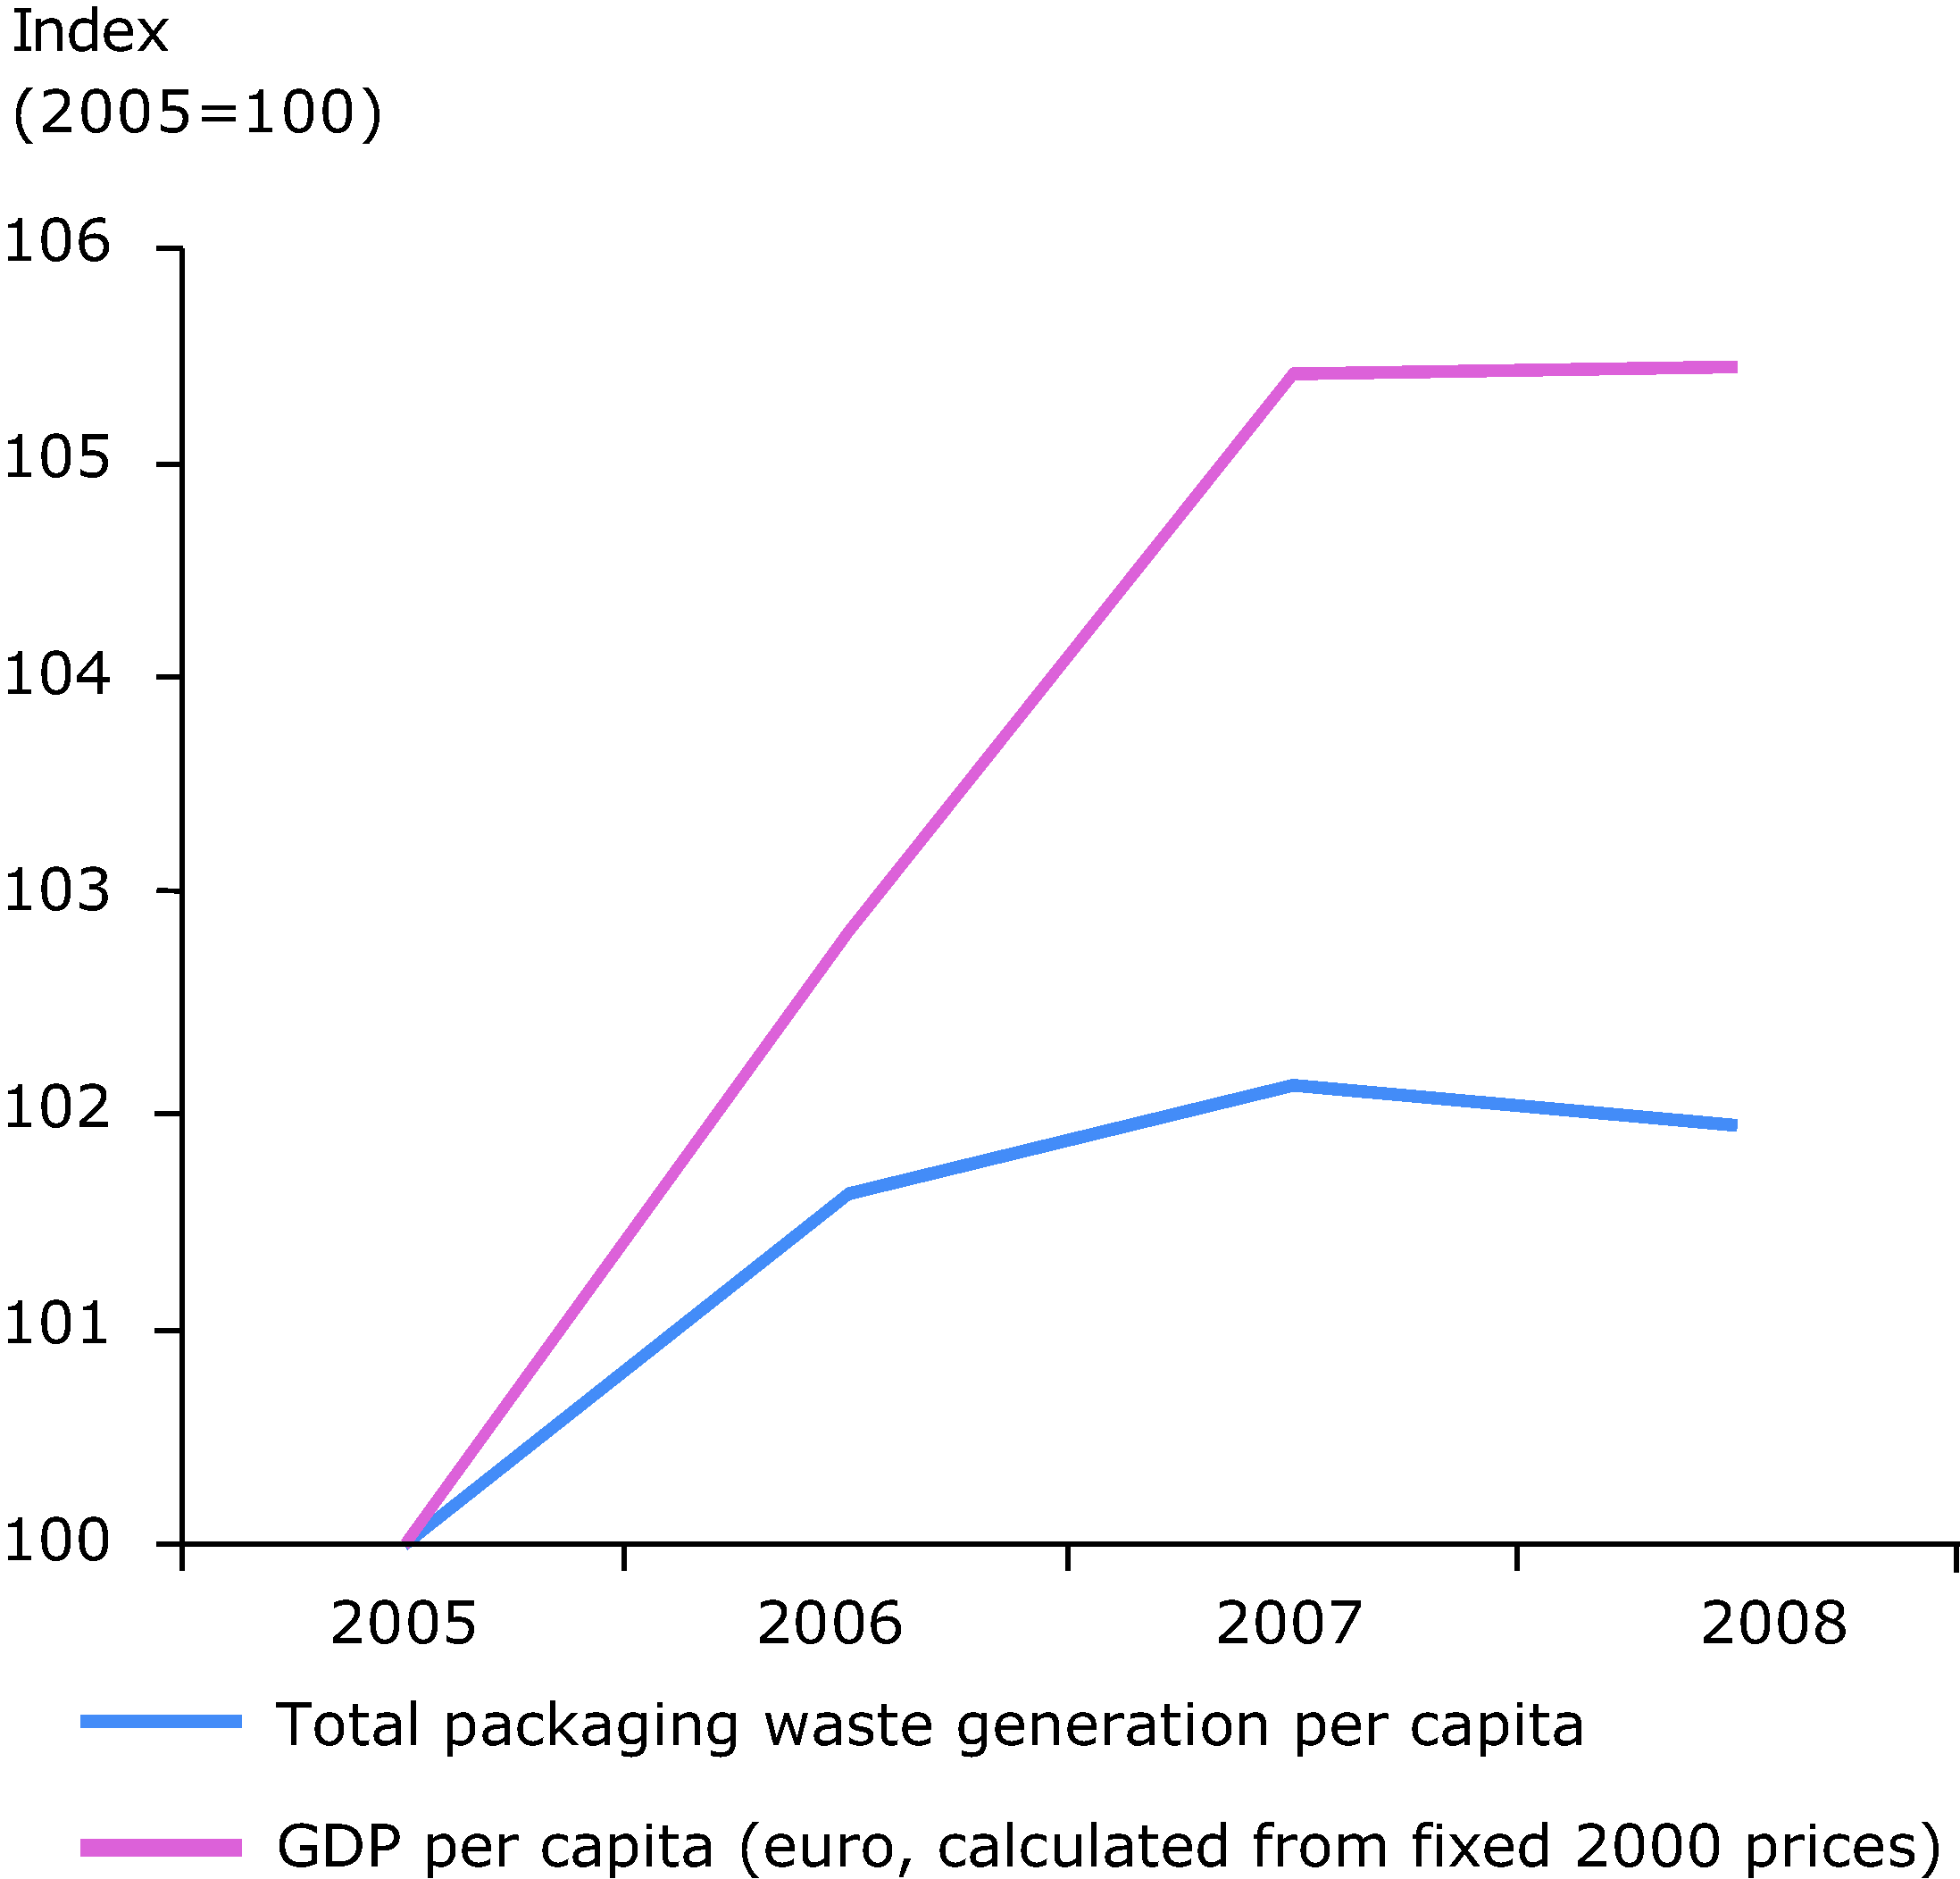 Generation of packaging waste and GDP in the EU 27